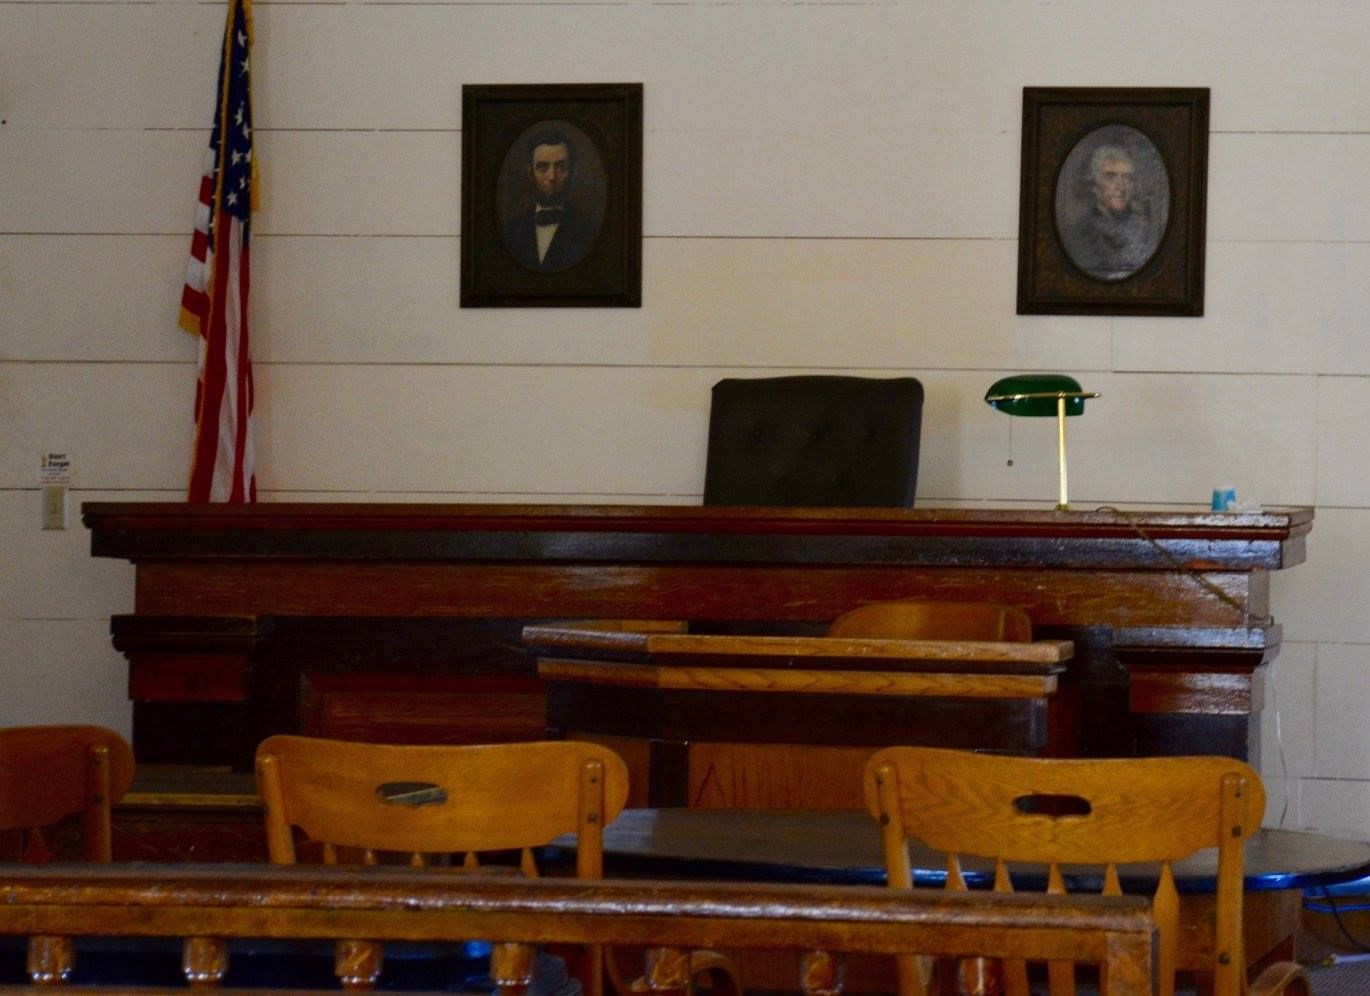 wooden furniture in mariposa county courthouse